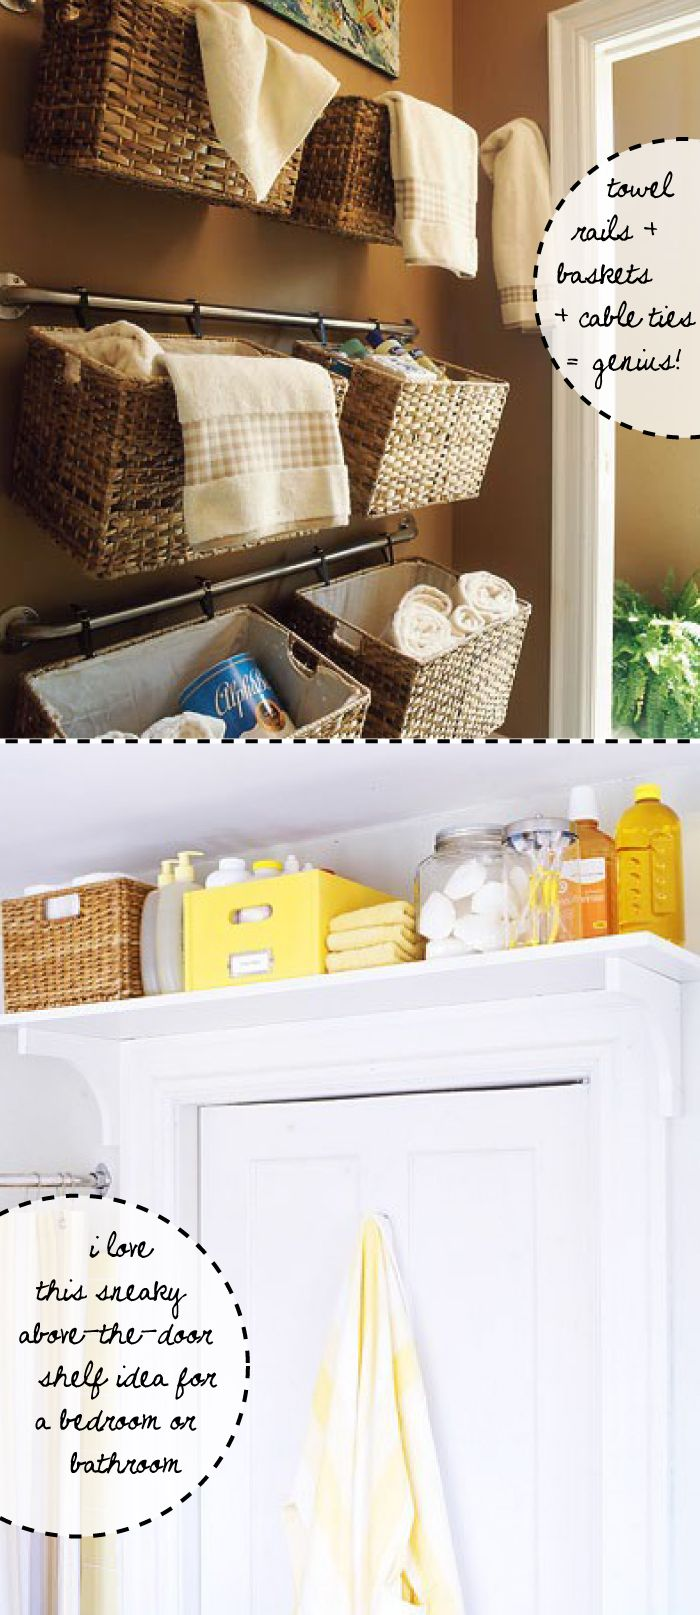 storage bathroom storage: The Doors, Good Ideas, Small Bathroom, Bathroom Storage, Shelves, Laundry Rooms, Baskets, Small Spaces, Storage Ideas